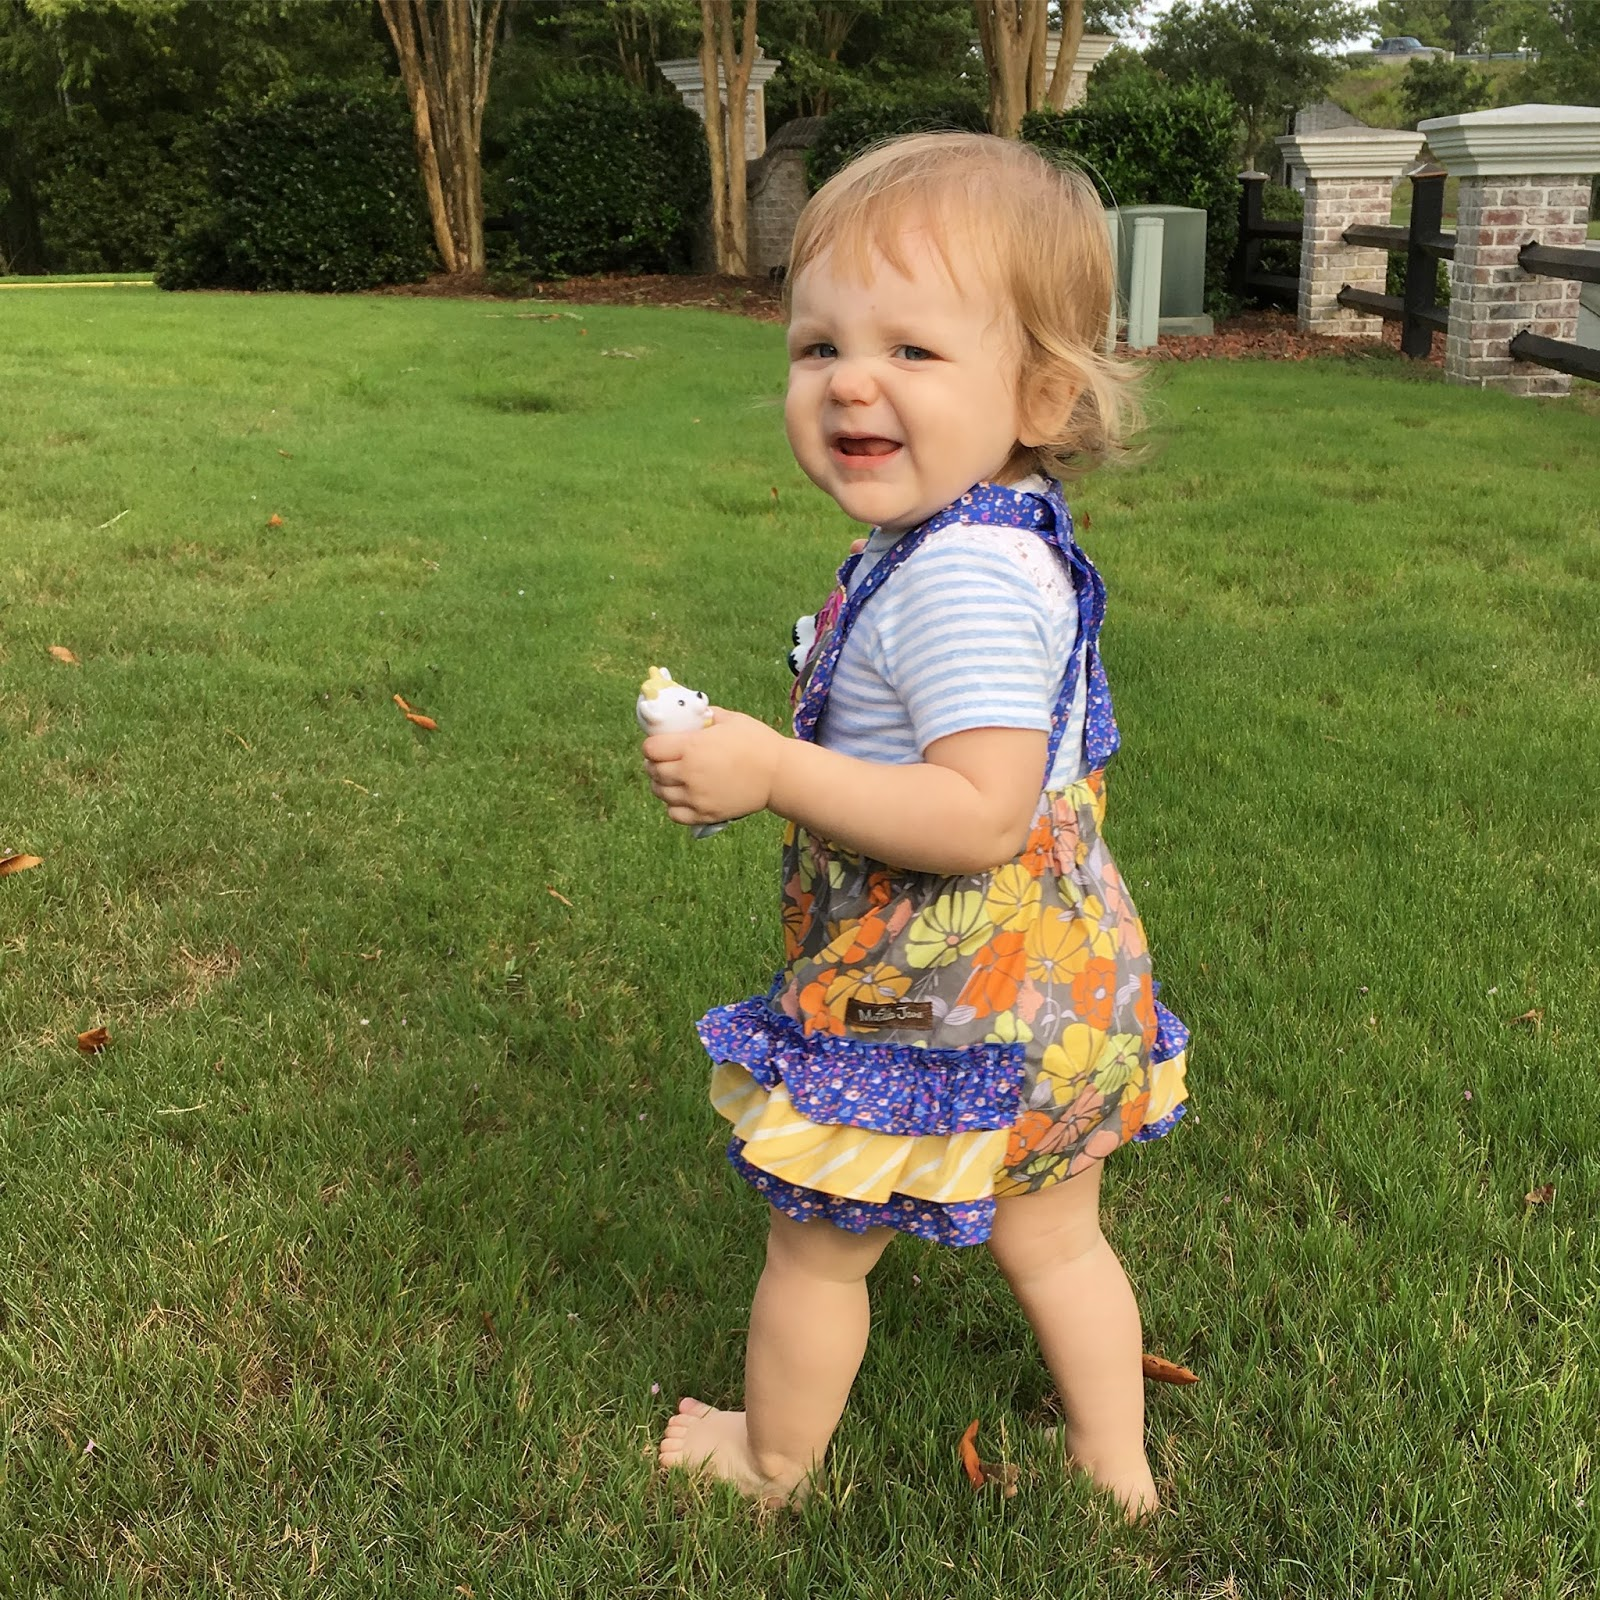 8a8bff2c8 Another noteworthy point about Matilda Jane is on the flip side of owning  them. When you're ready to pass along these adorable duds to a new little  girl, ...